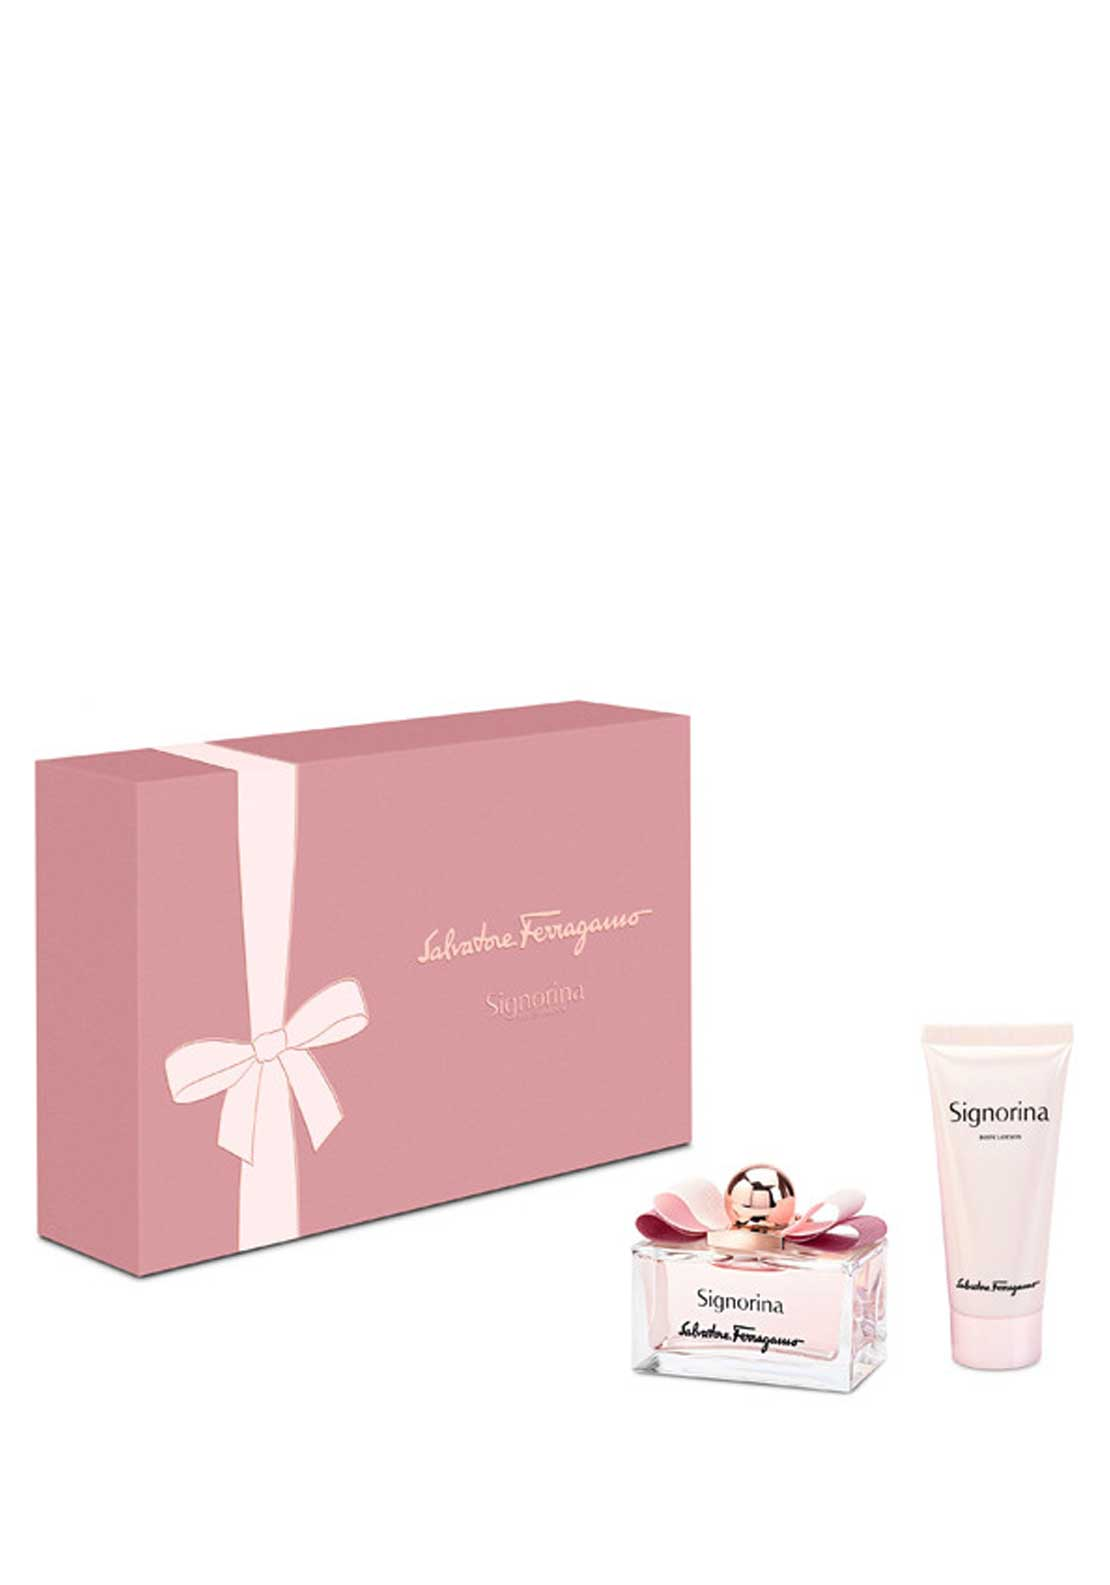 Salvatore Ferragamo Signorina Gift Set, 50ml